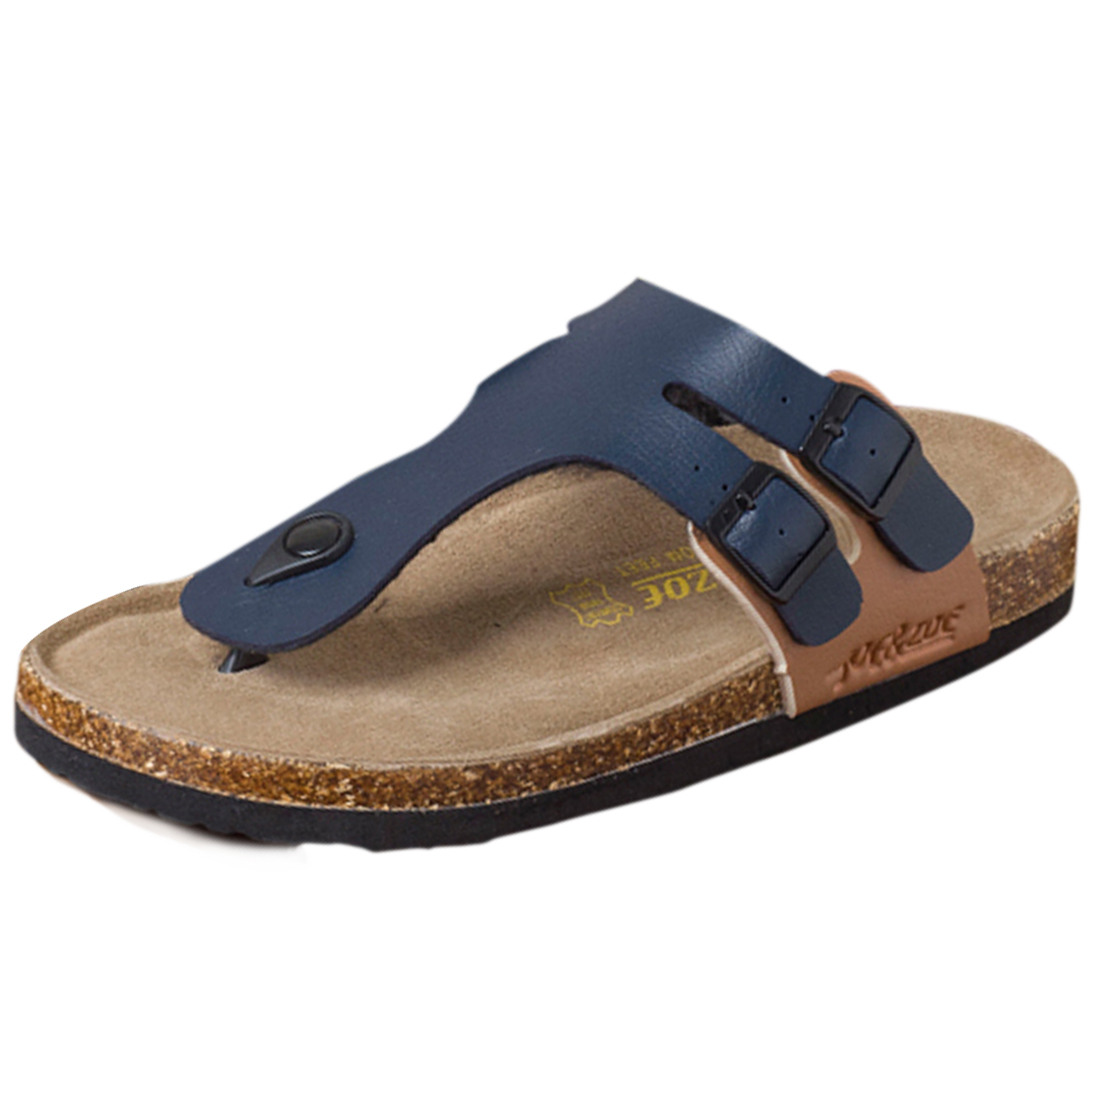 Mens Navy Blue Black Functional Buckles Casual Wear Flip Flops US 10